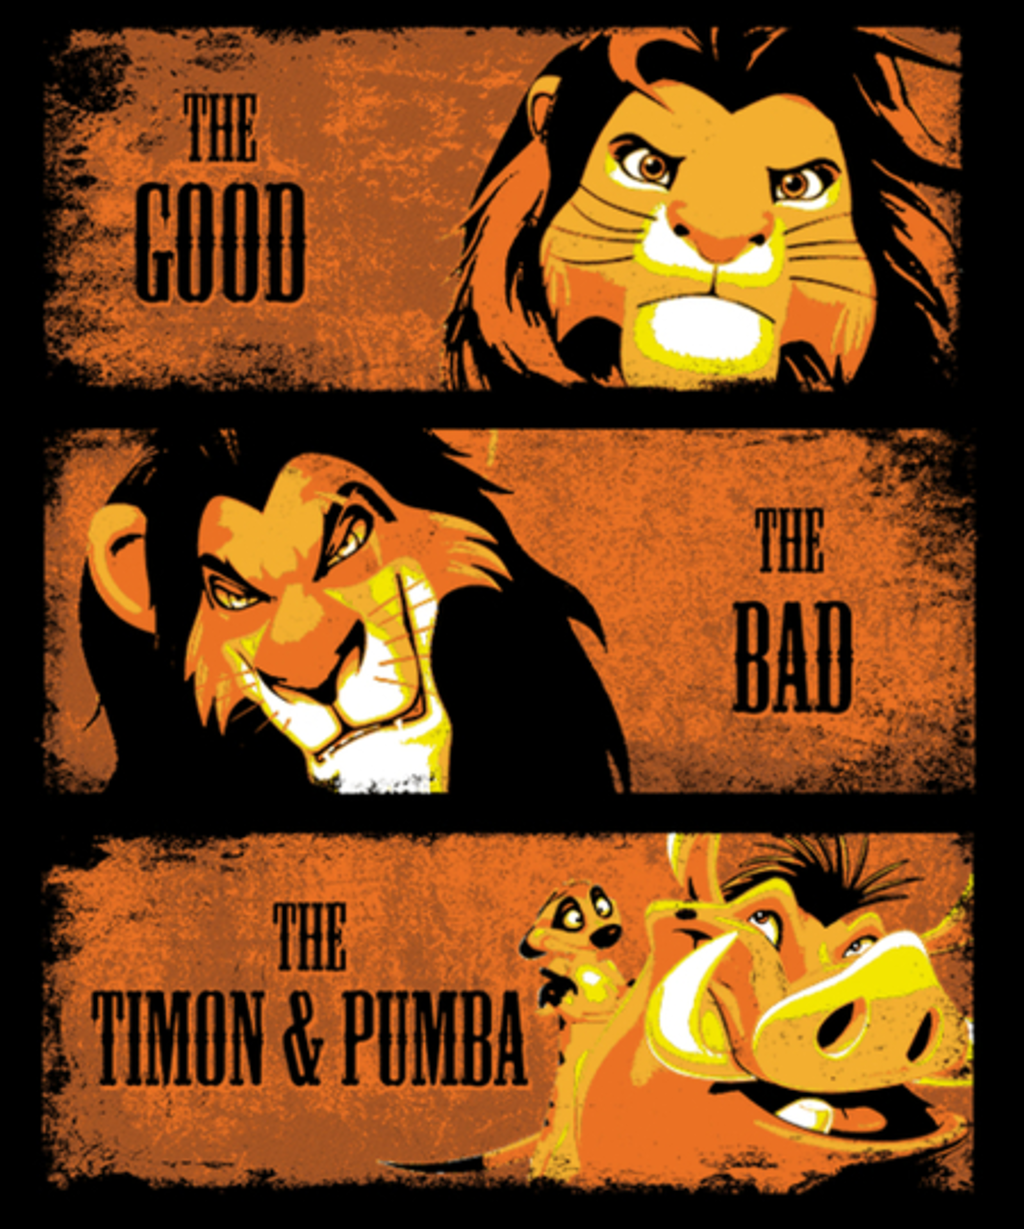 Qwertee: The Good, The Bad, The Timon&Pumba